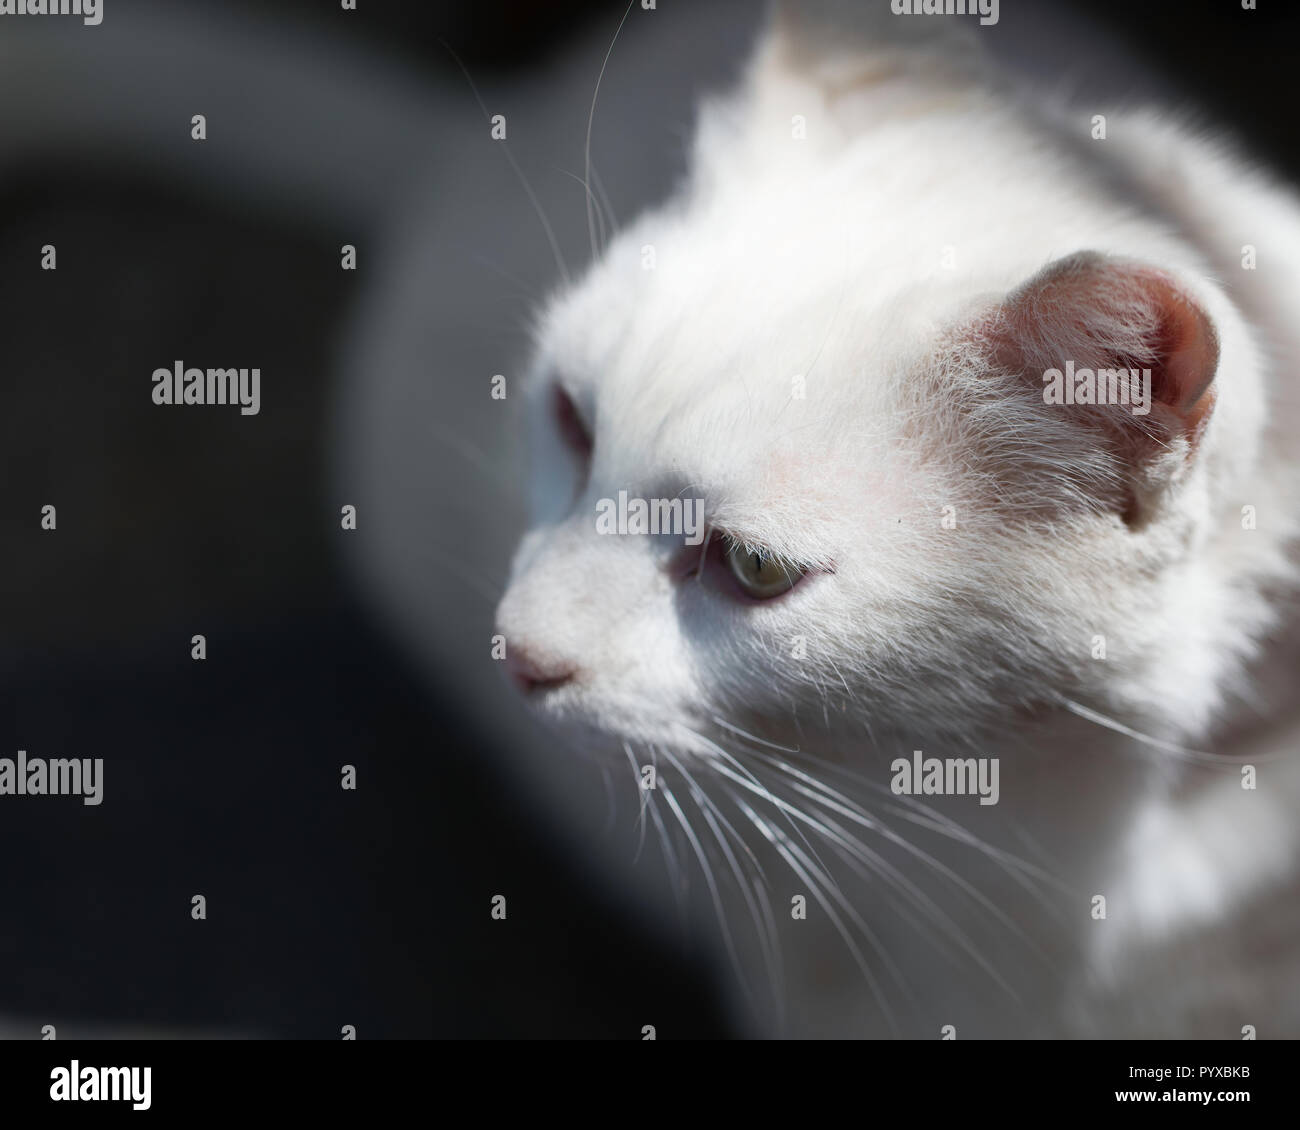 Hungry cat sitting in a restaurant and looking around - Stock Image